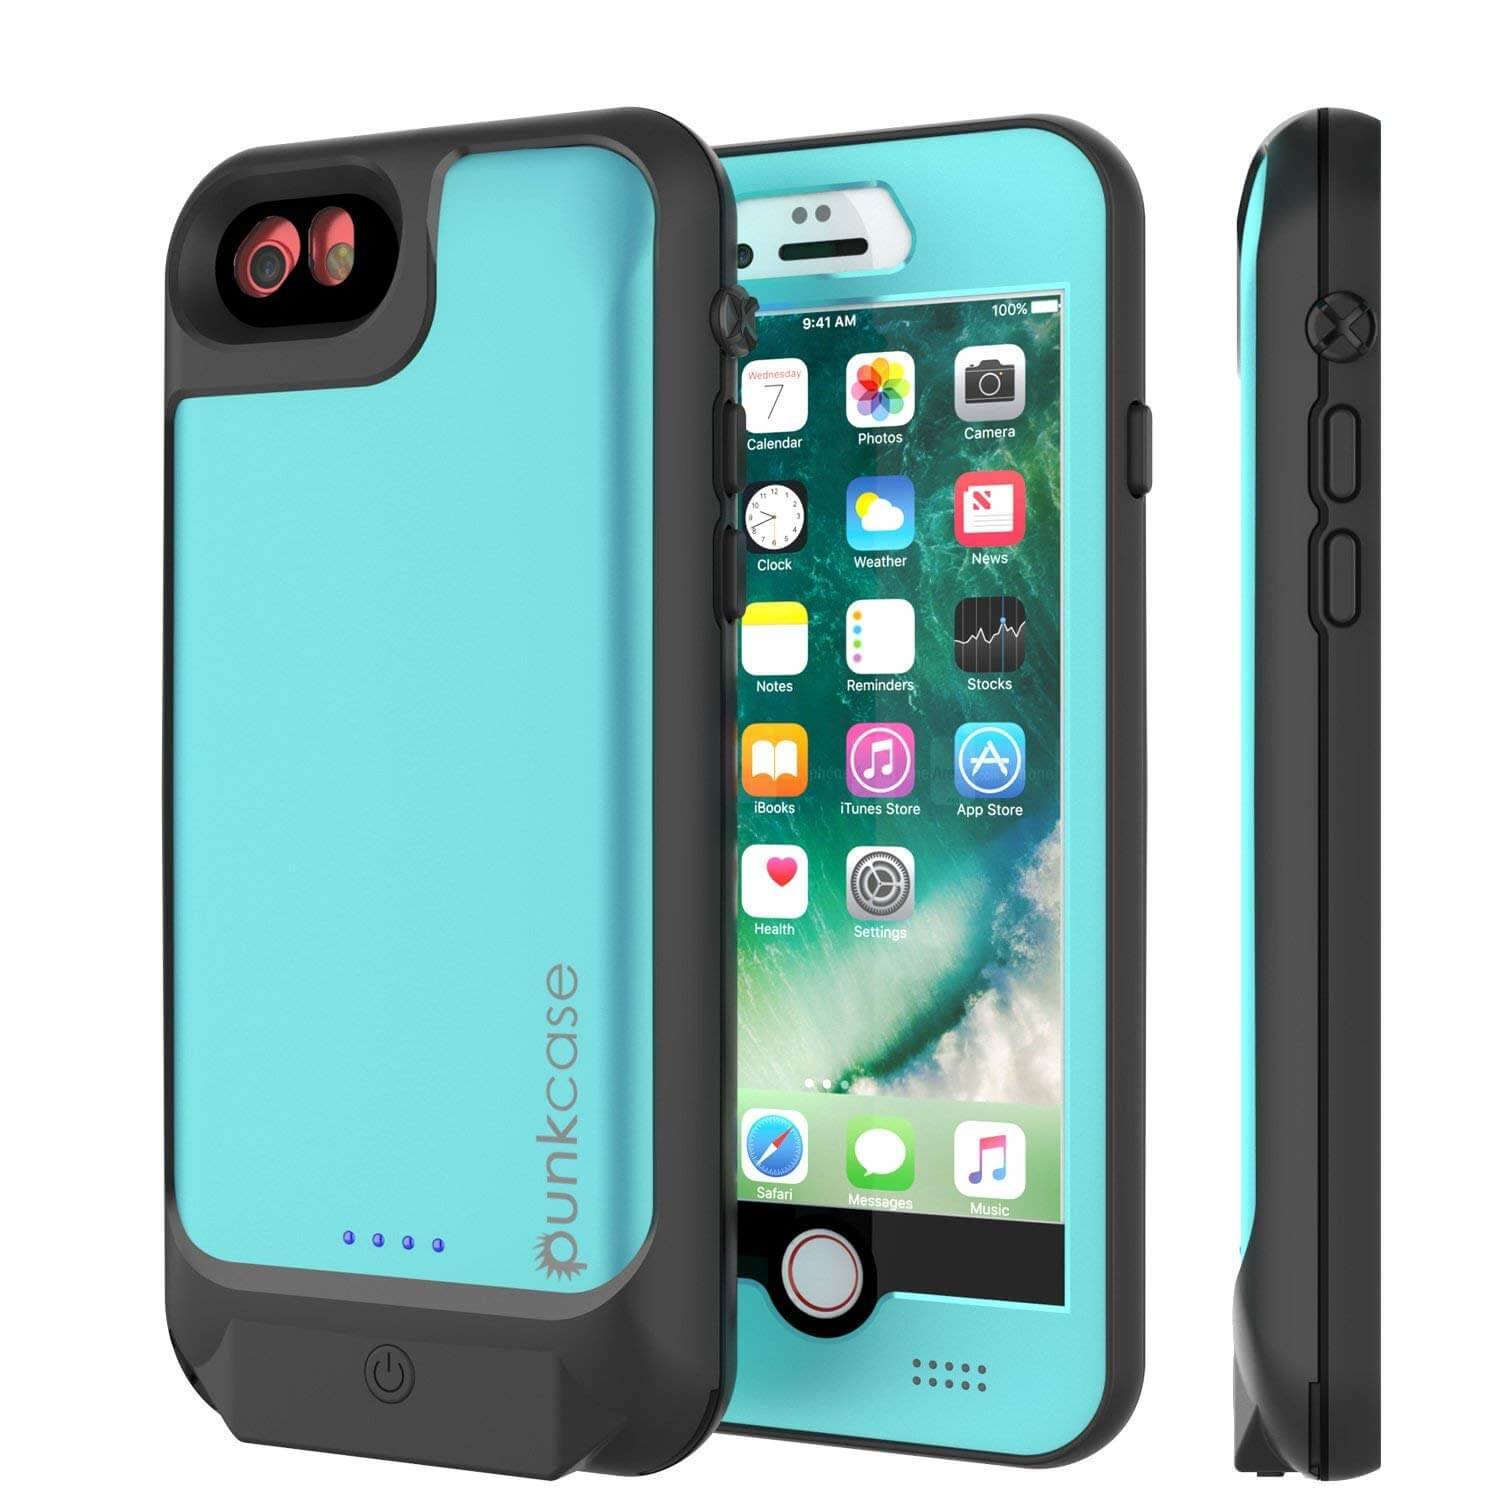 PunkJuice iPhone 8/7 Battery Case Teal - Waterproof Slim Power Juice Bank with 2750mAh